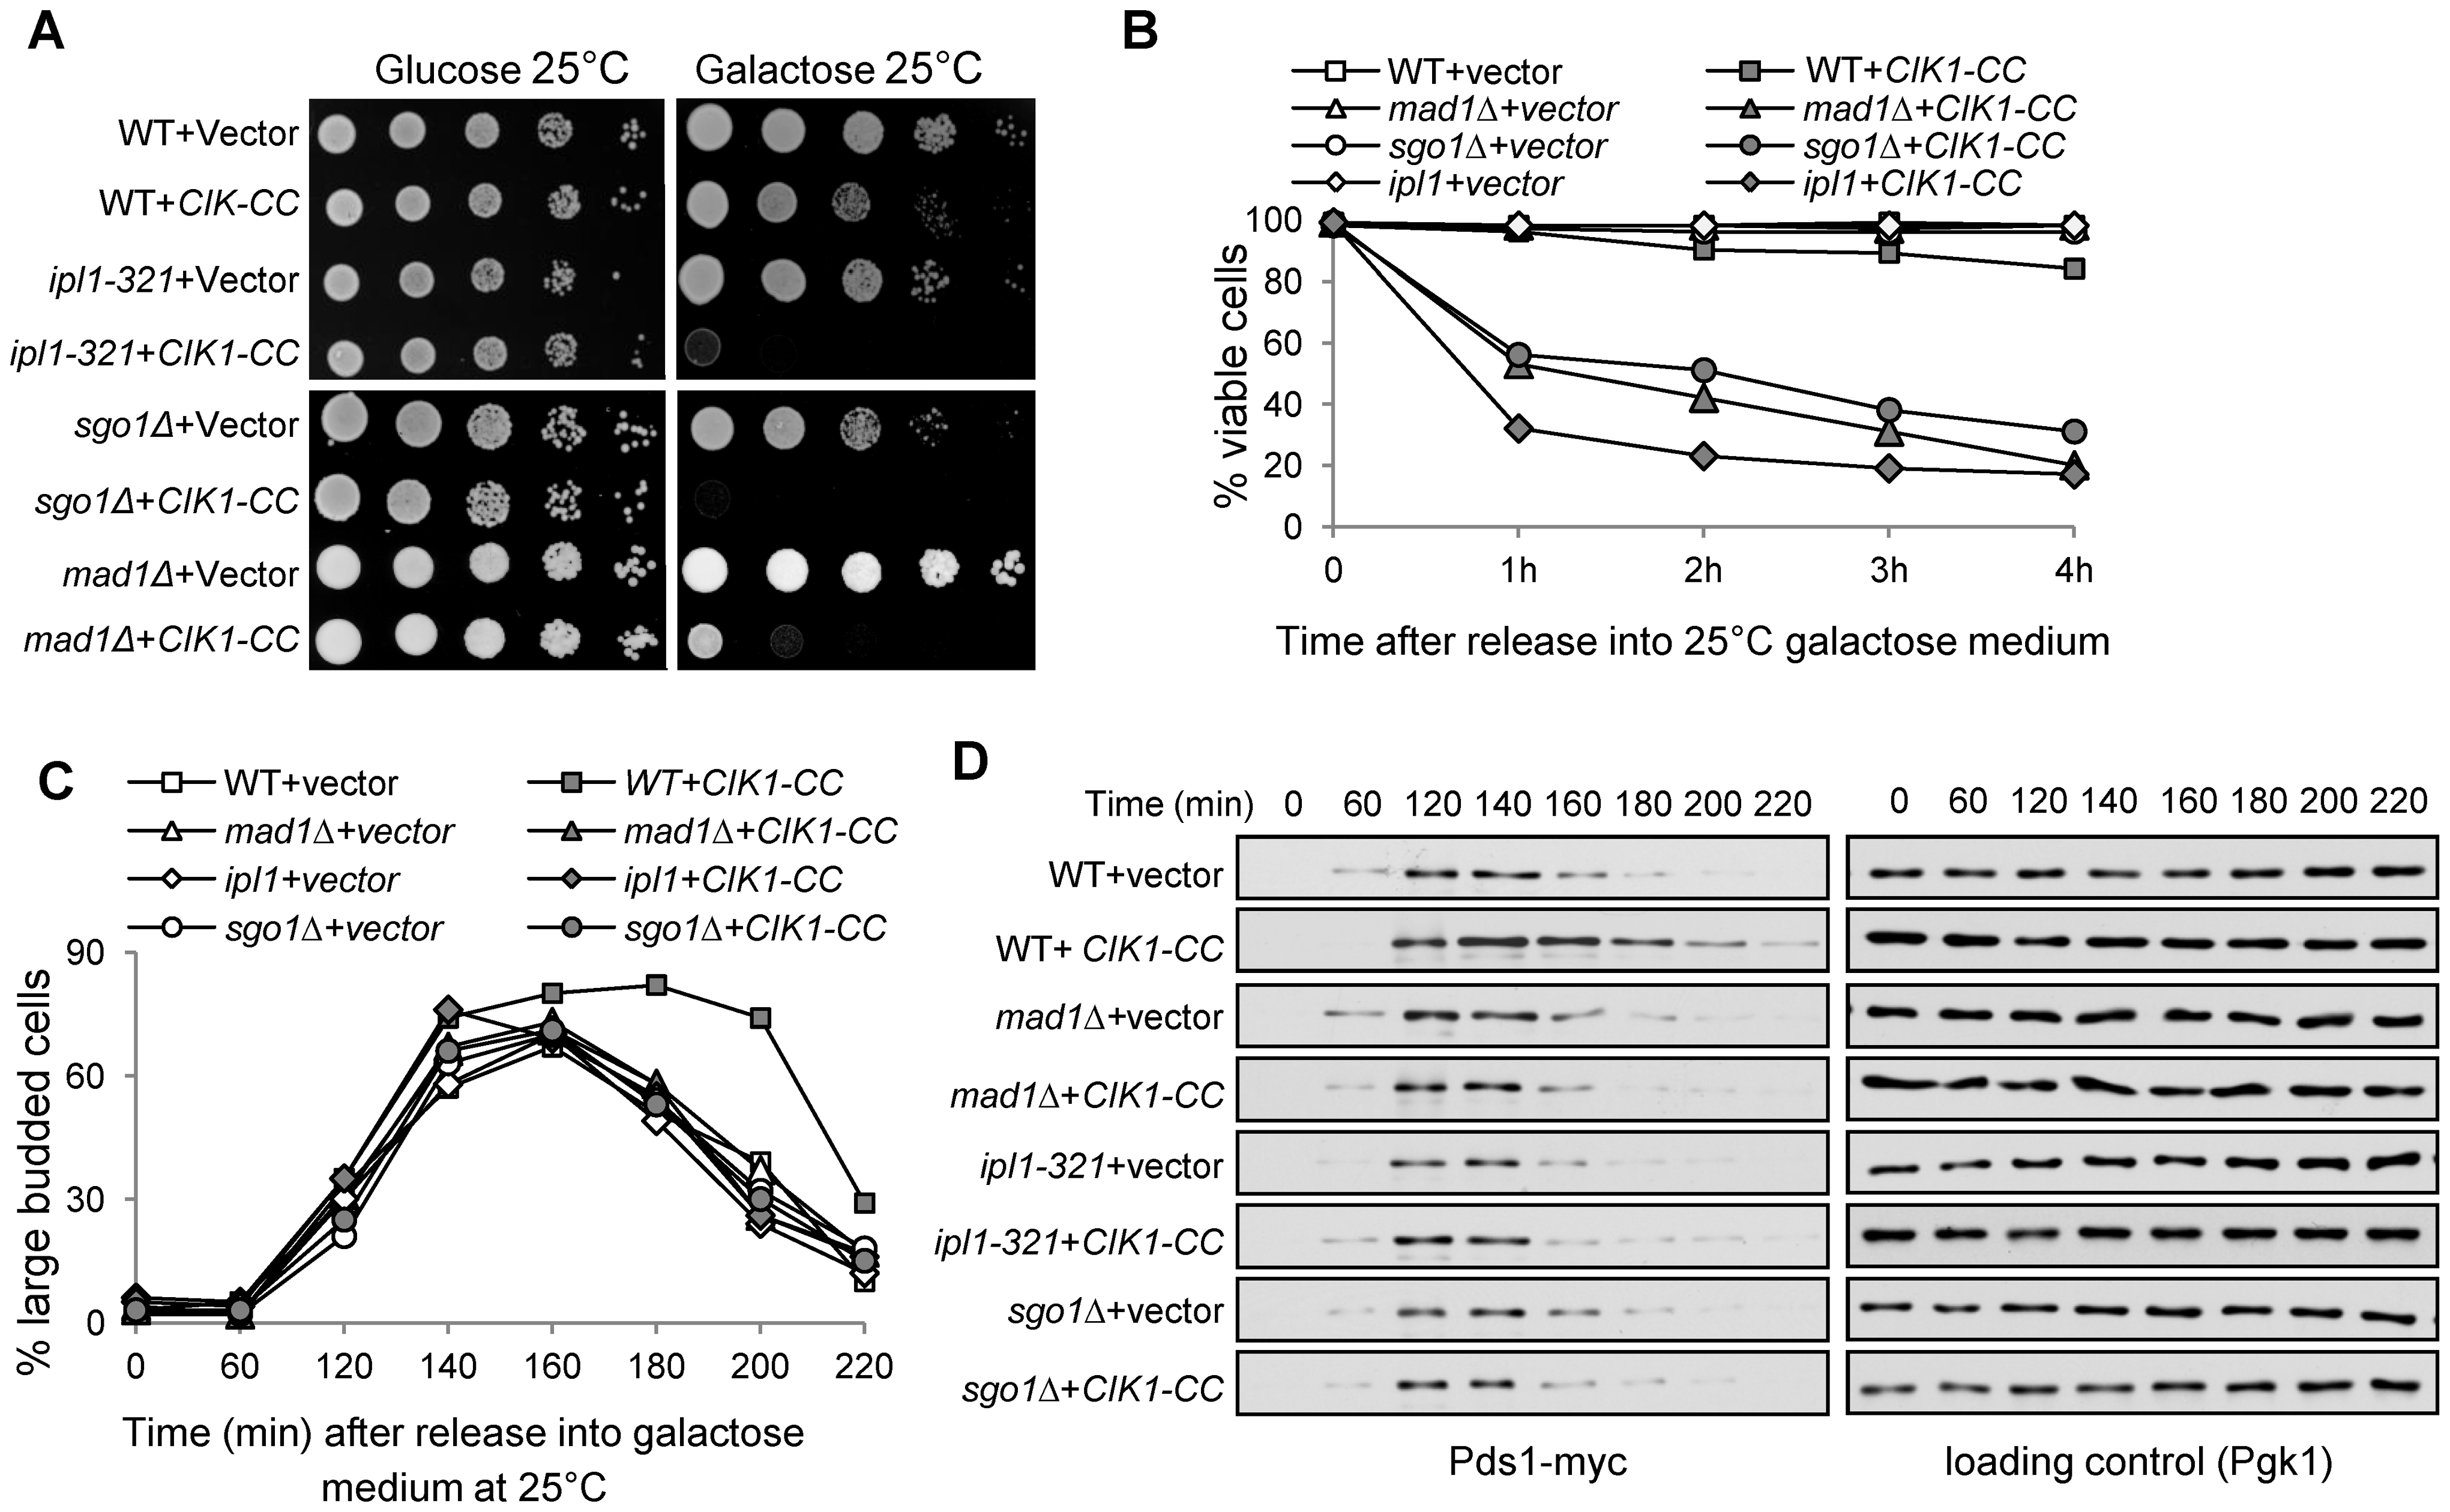 Overexpression of <i>CIK1-CC</i> results in checkpoint-dependent anaphase entry delay.